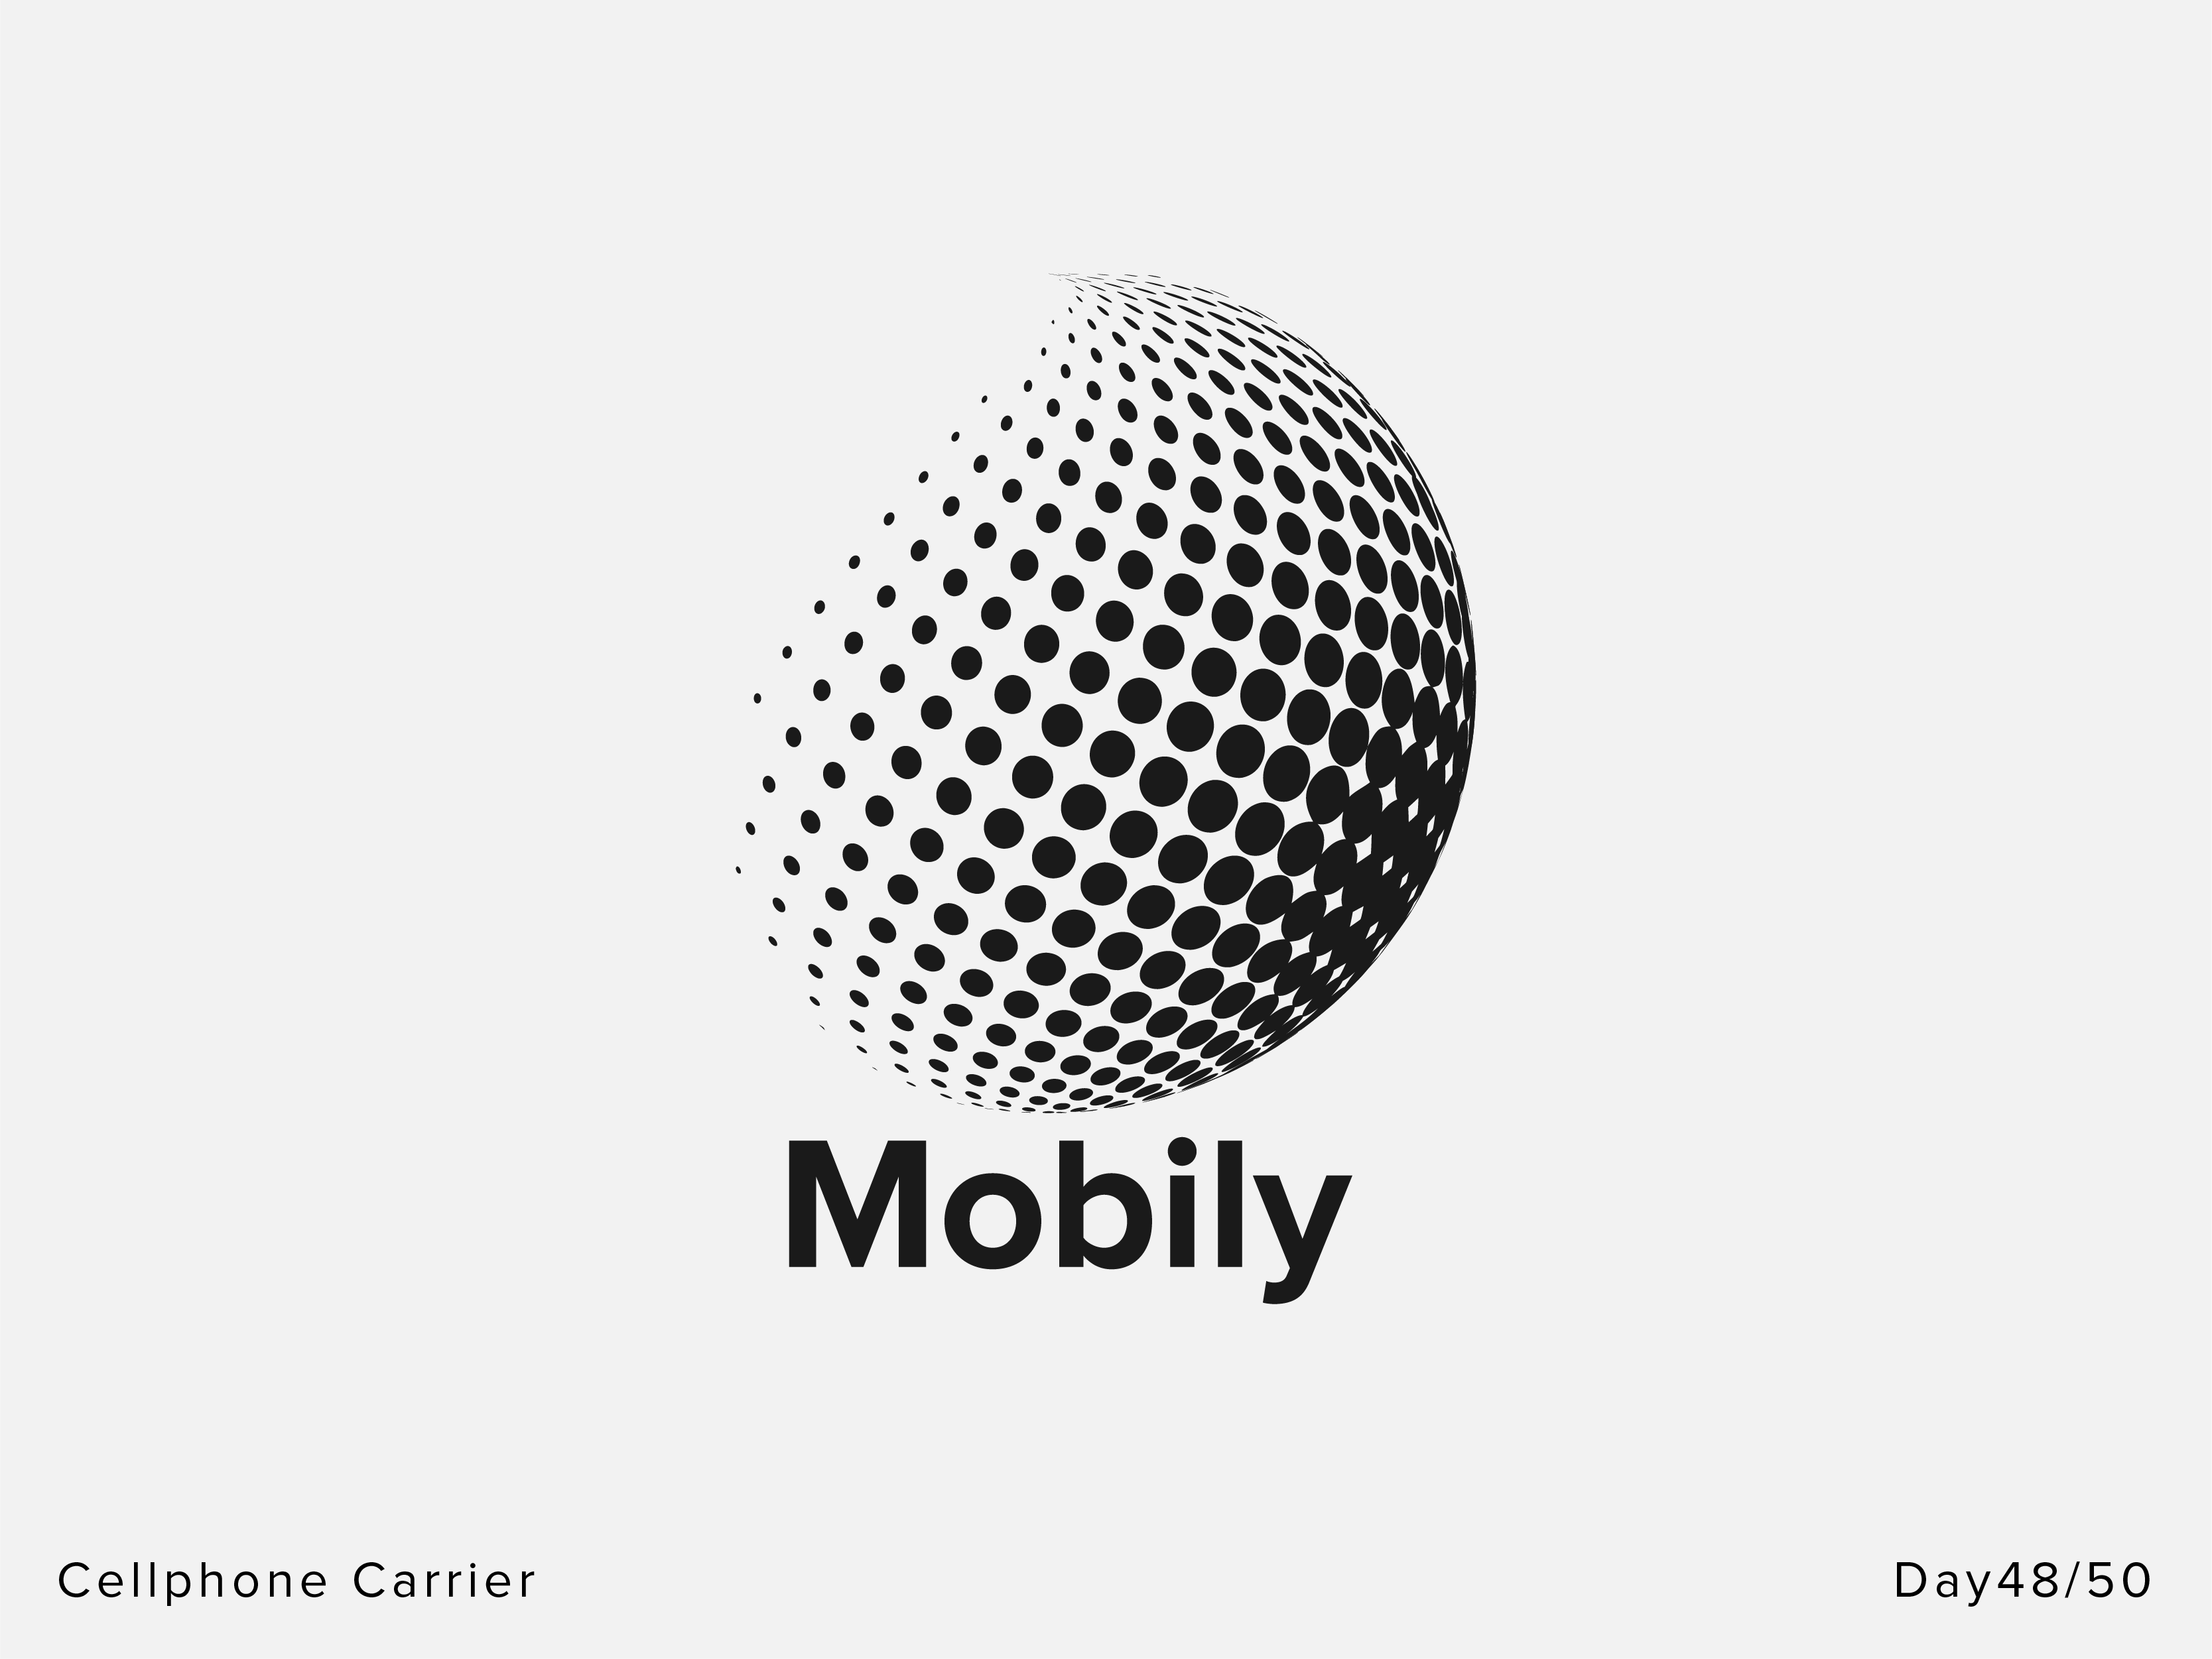 Cellphone Carrier Day 48 Daily Logo Challenge Cell Phone Carriers Logos